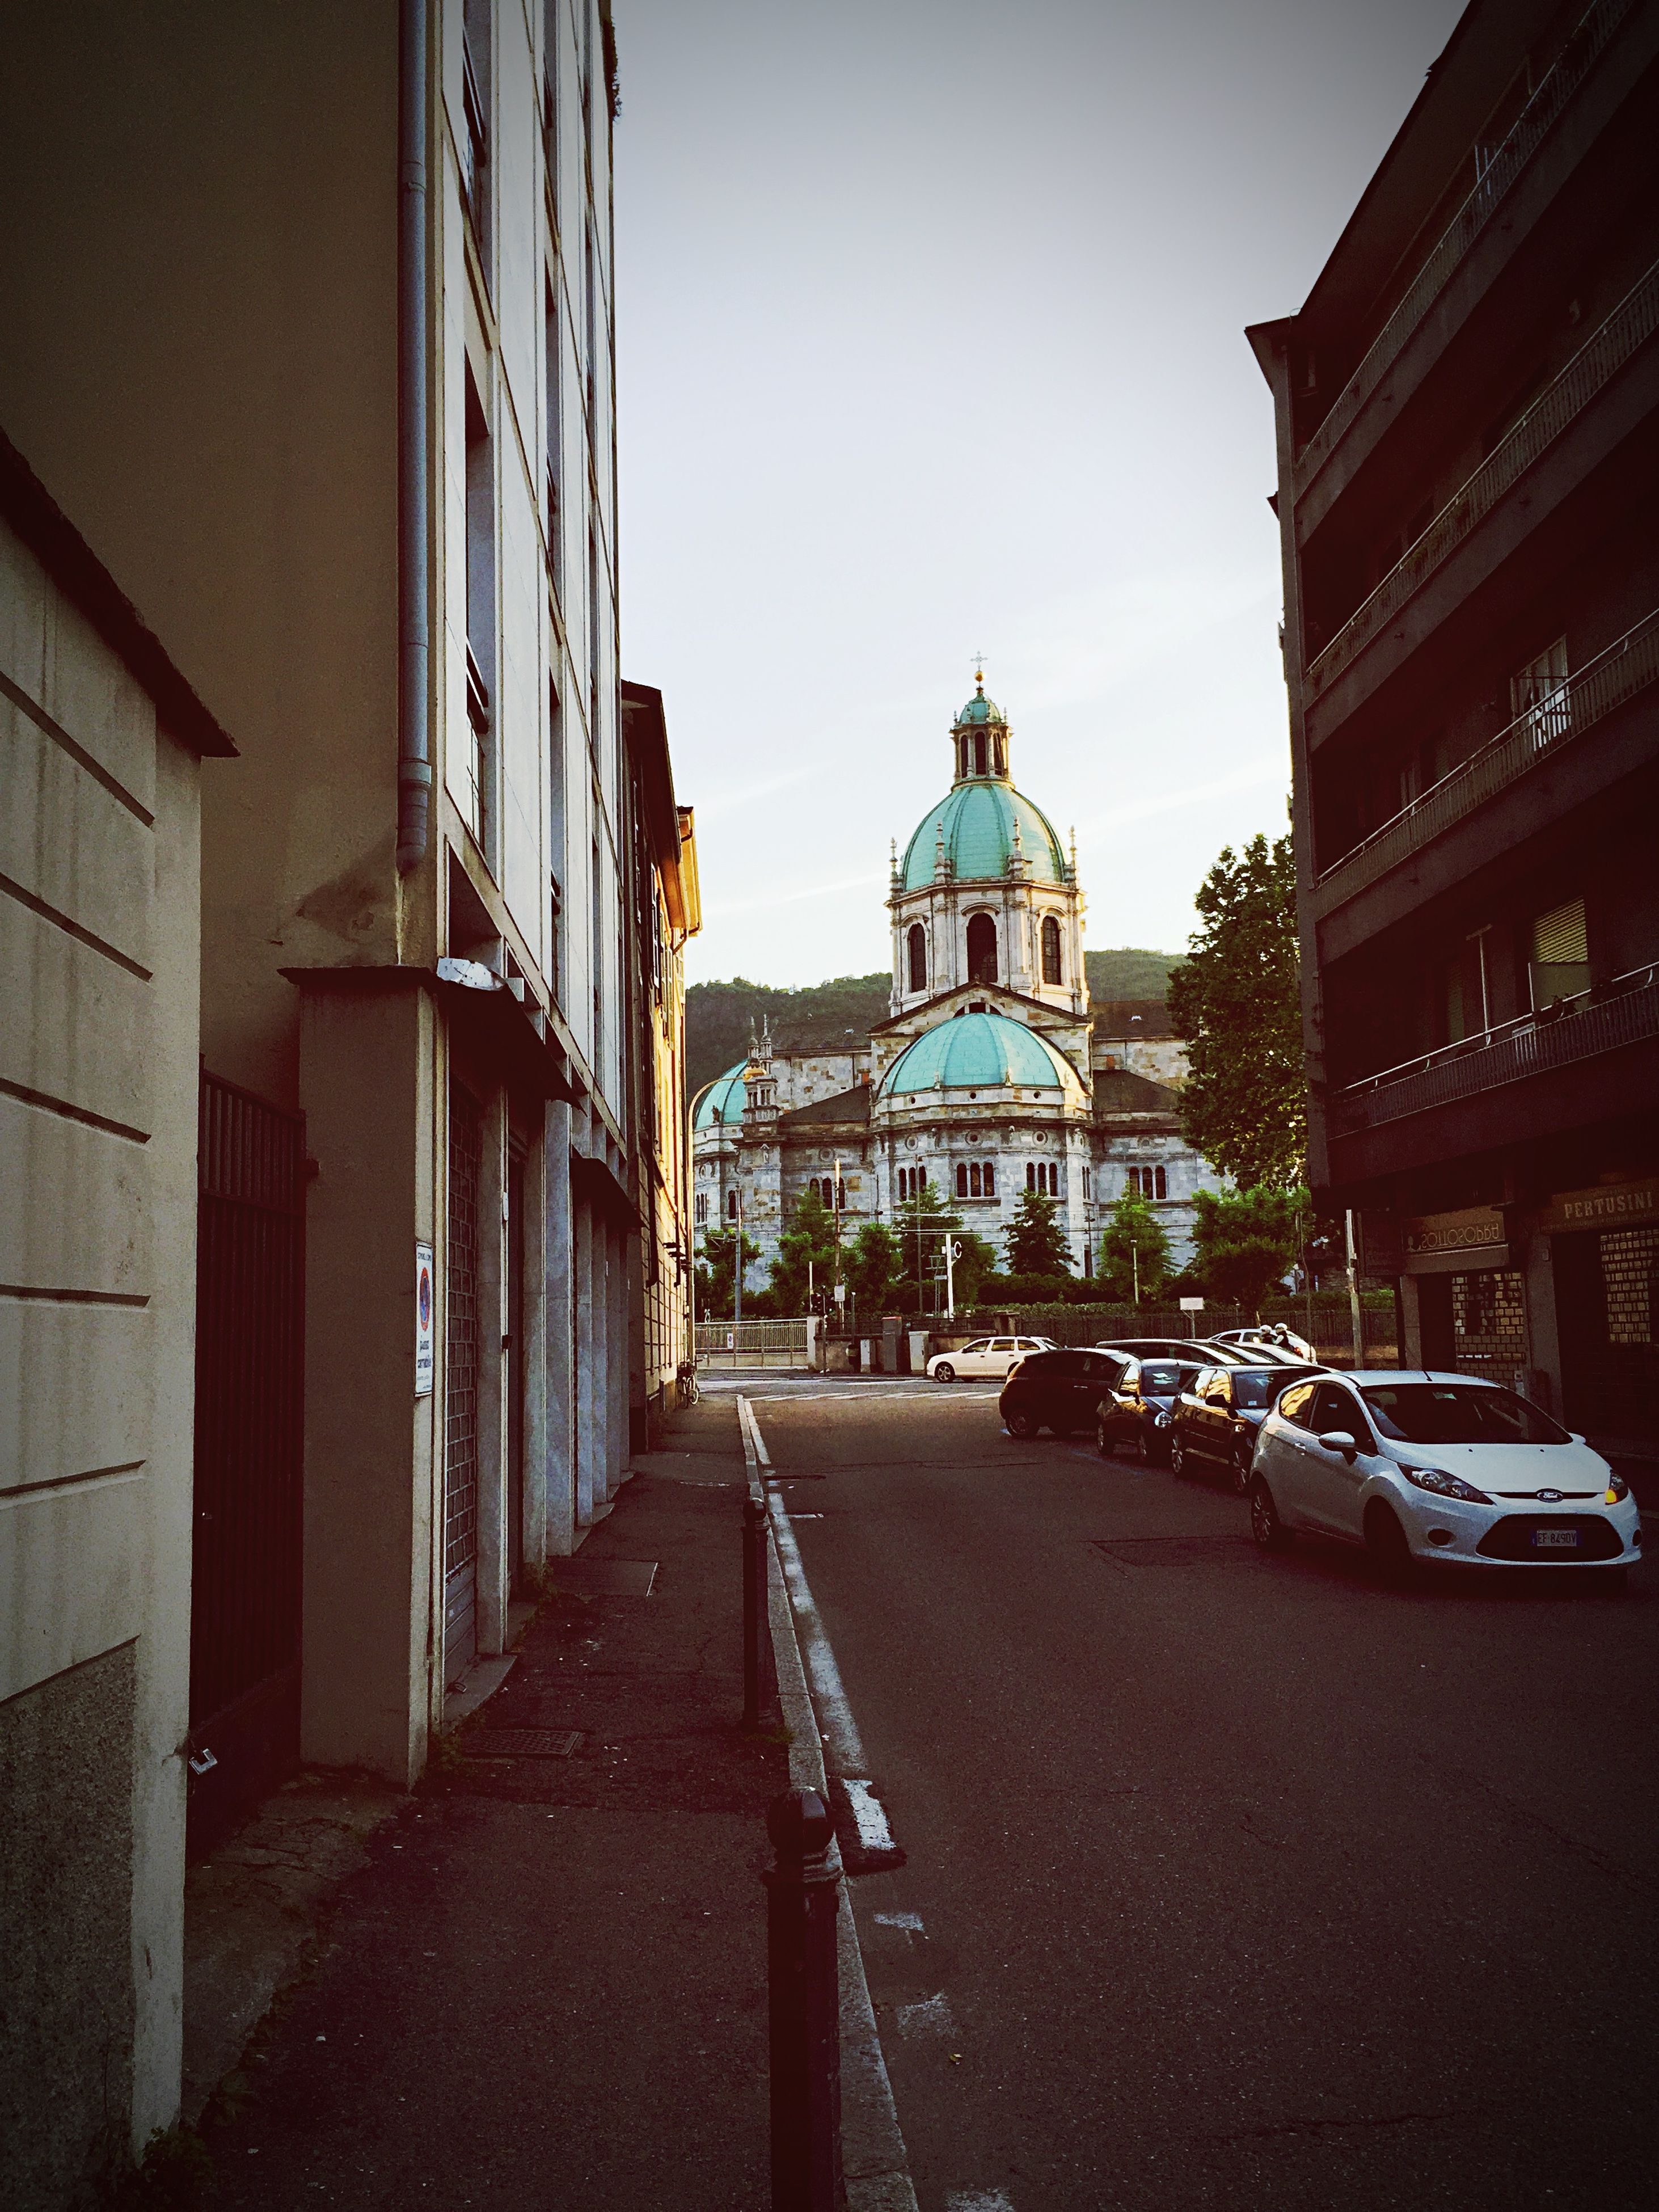 architecture, building exterior, built structure, the way forward, street, diminishing perspective, sky, church, religion, vanishing point, road, city, place of worship, empty, cobblestone, walkway, outdoors, spirituality, day